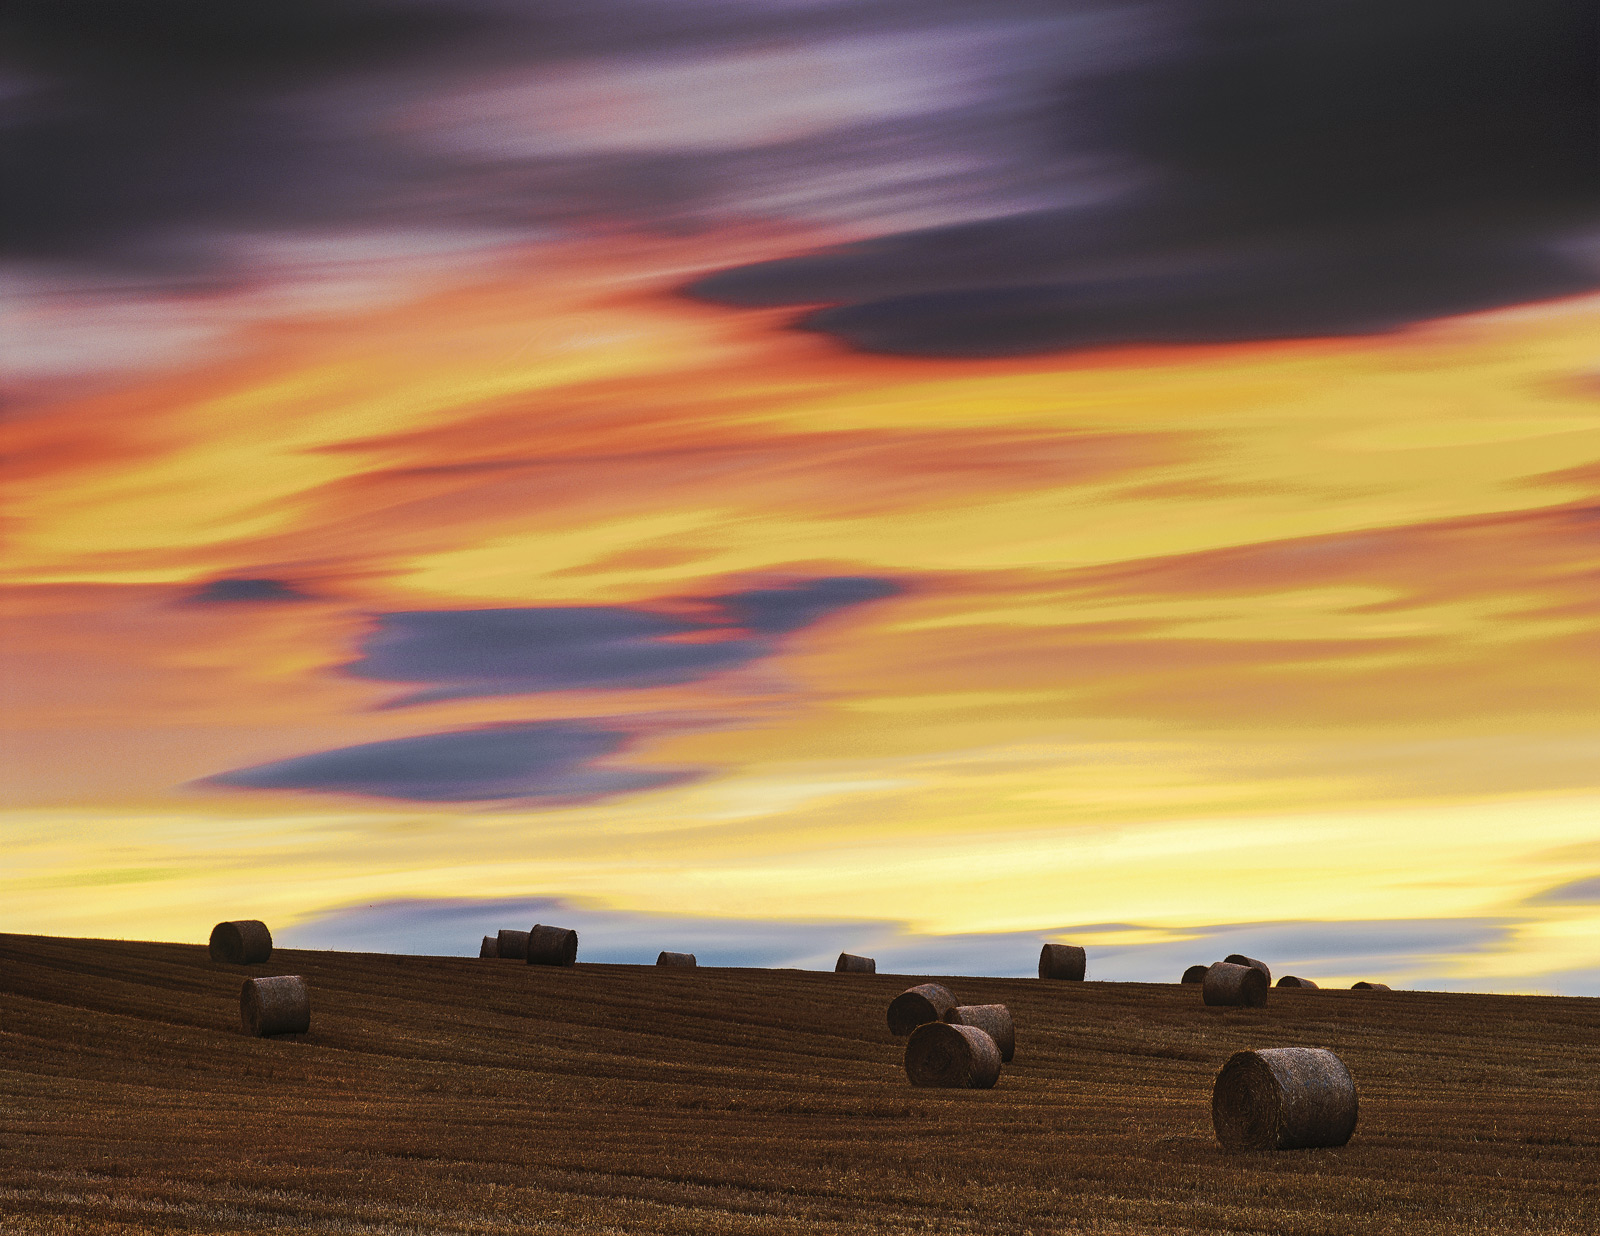 I found myself at the foot of a sloping field of straw bales which backed on to a glorious sunset sky. The simplistic composition...